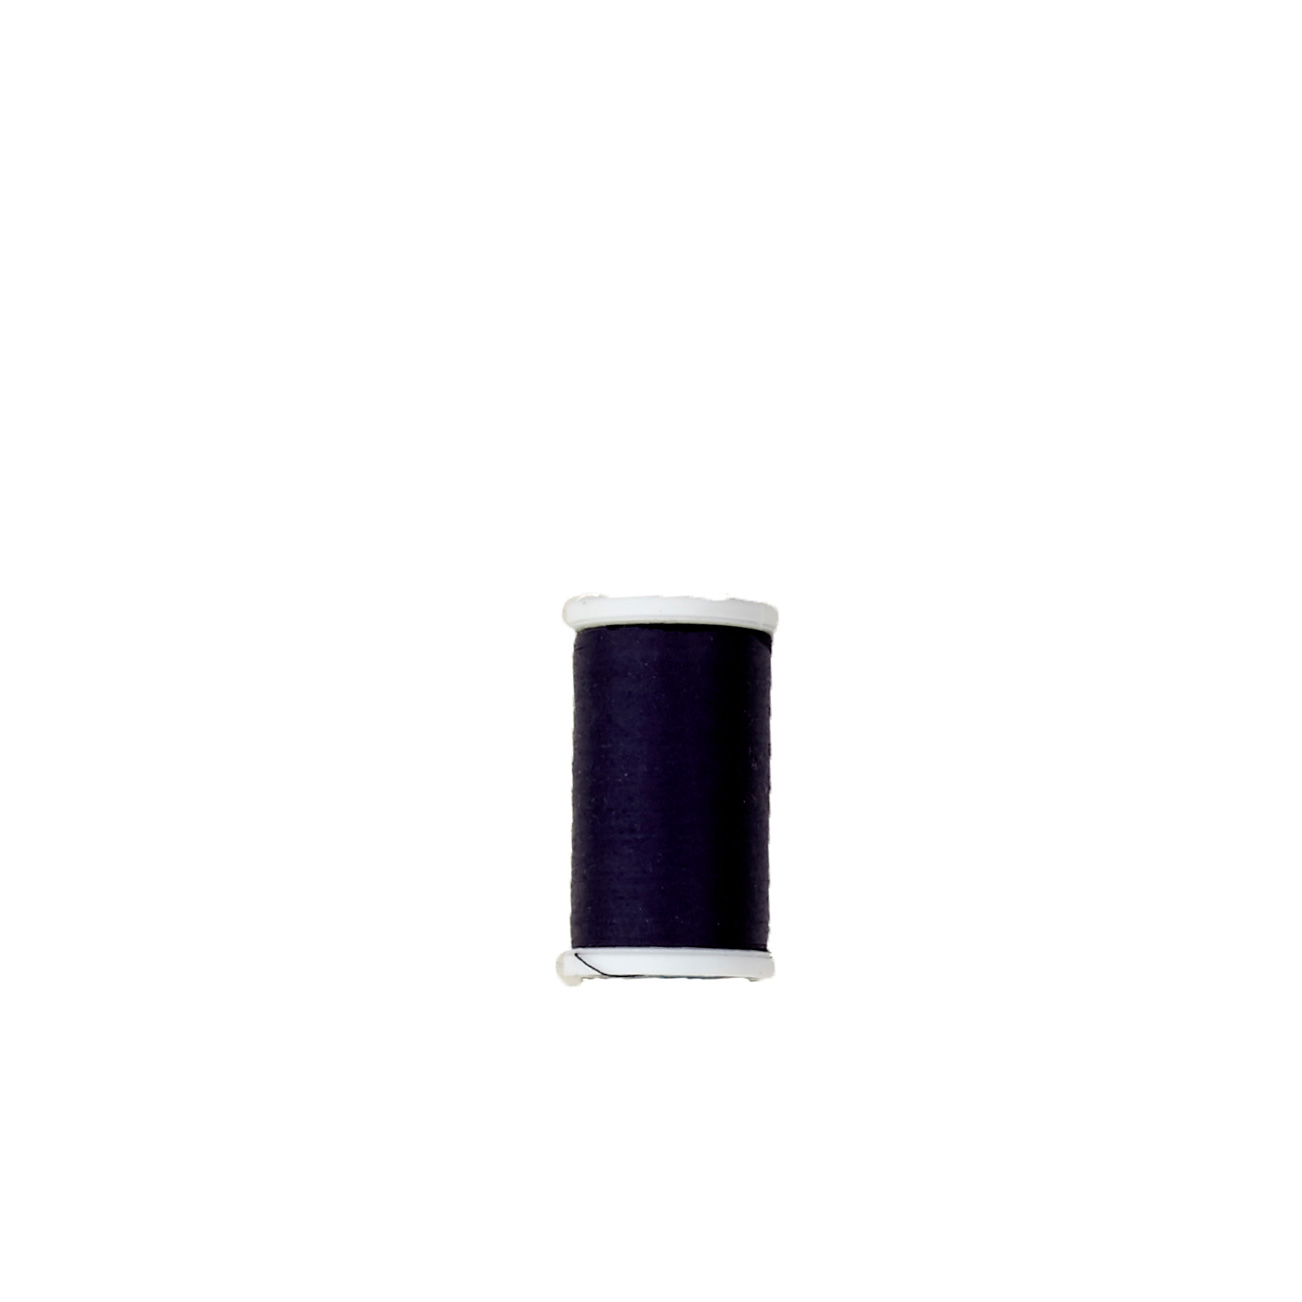 Dual Duty XP General Purpose Thread 500 YD Navy